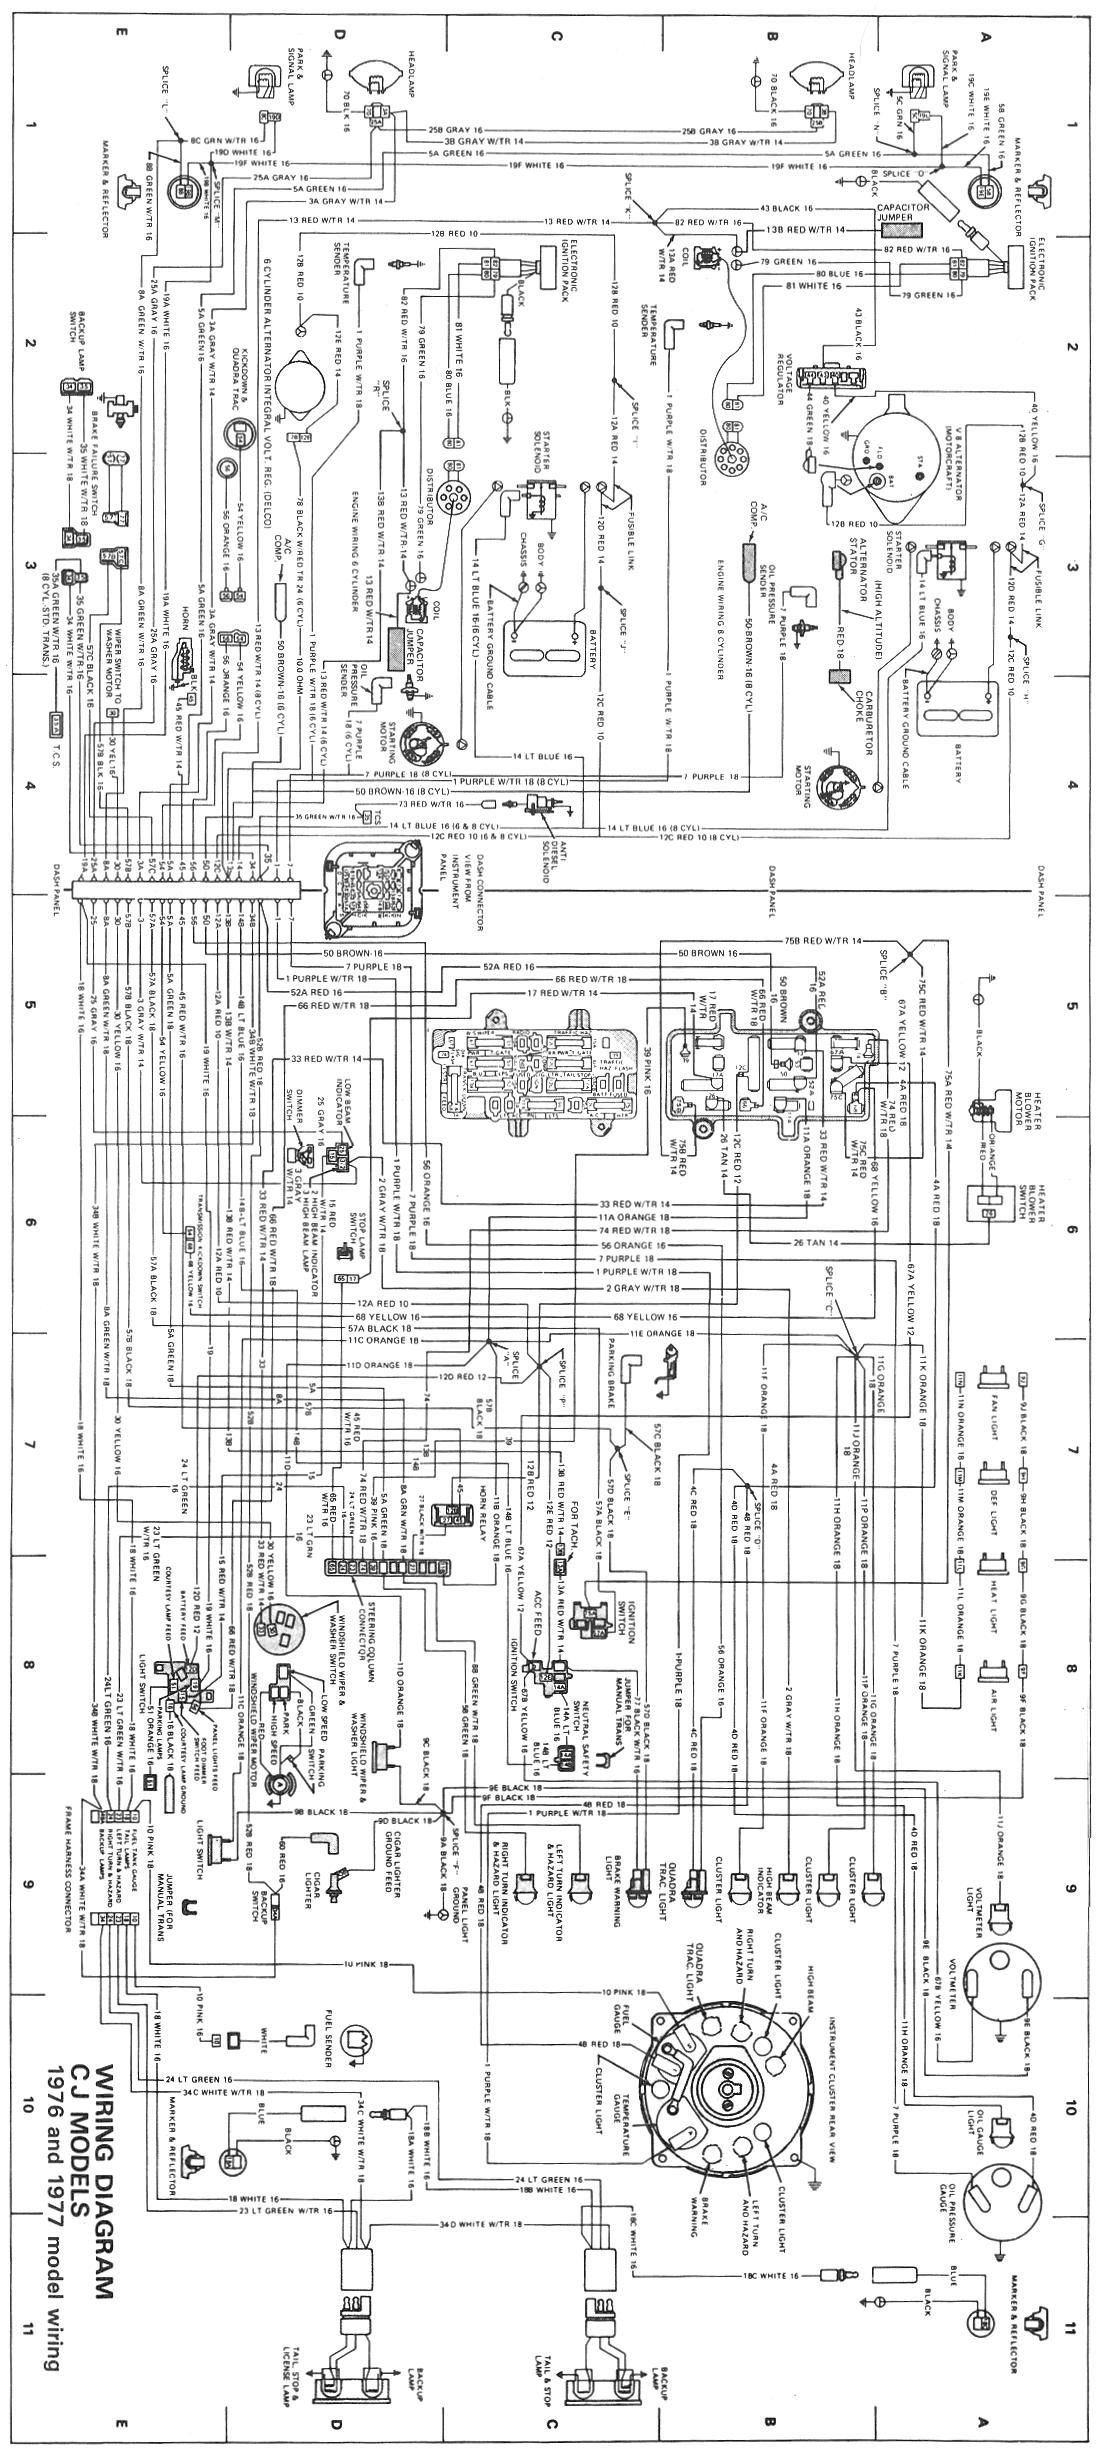 medium resolution of 1977 cj5 wiring diagram wiring diagram fascinatingcj5 ignition wiring diagram 15